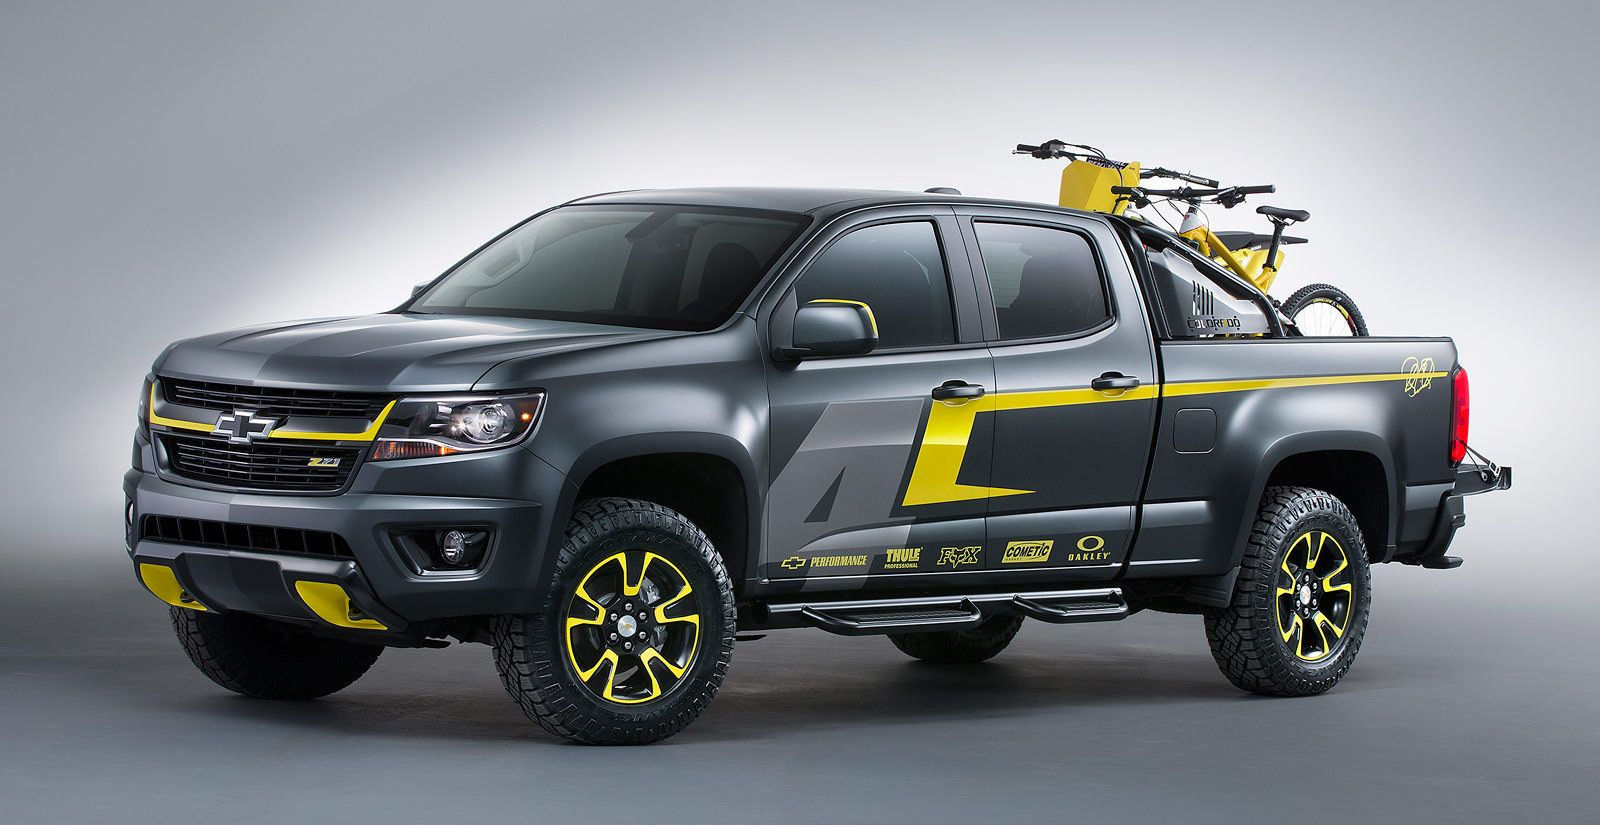 Chevrolet ricky carmichael chevy performance sema concept truck